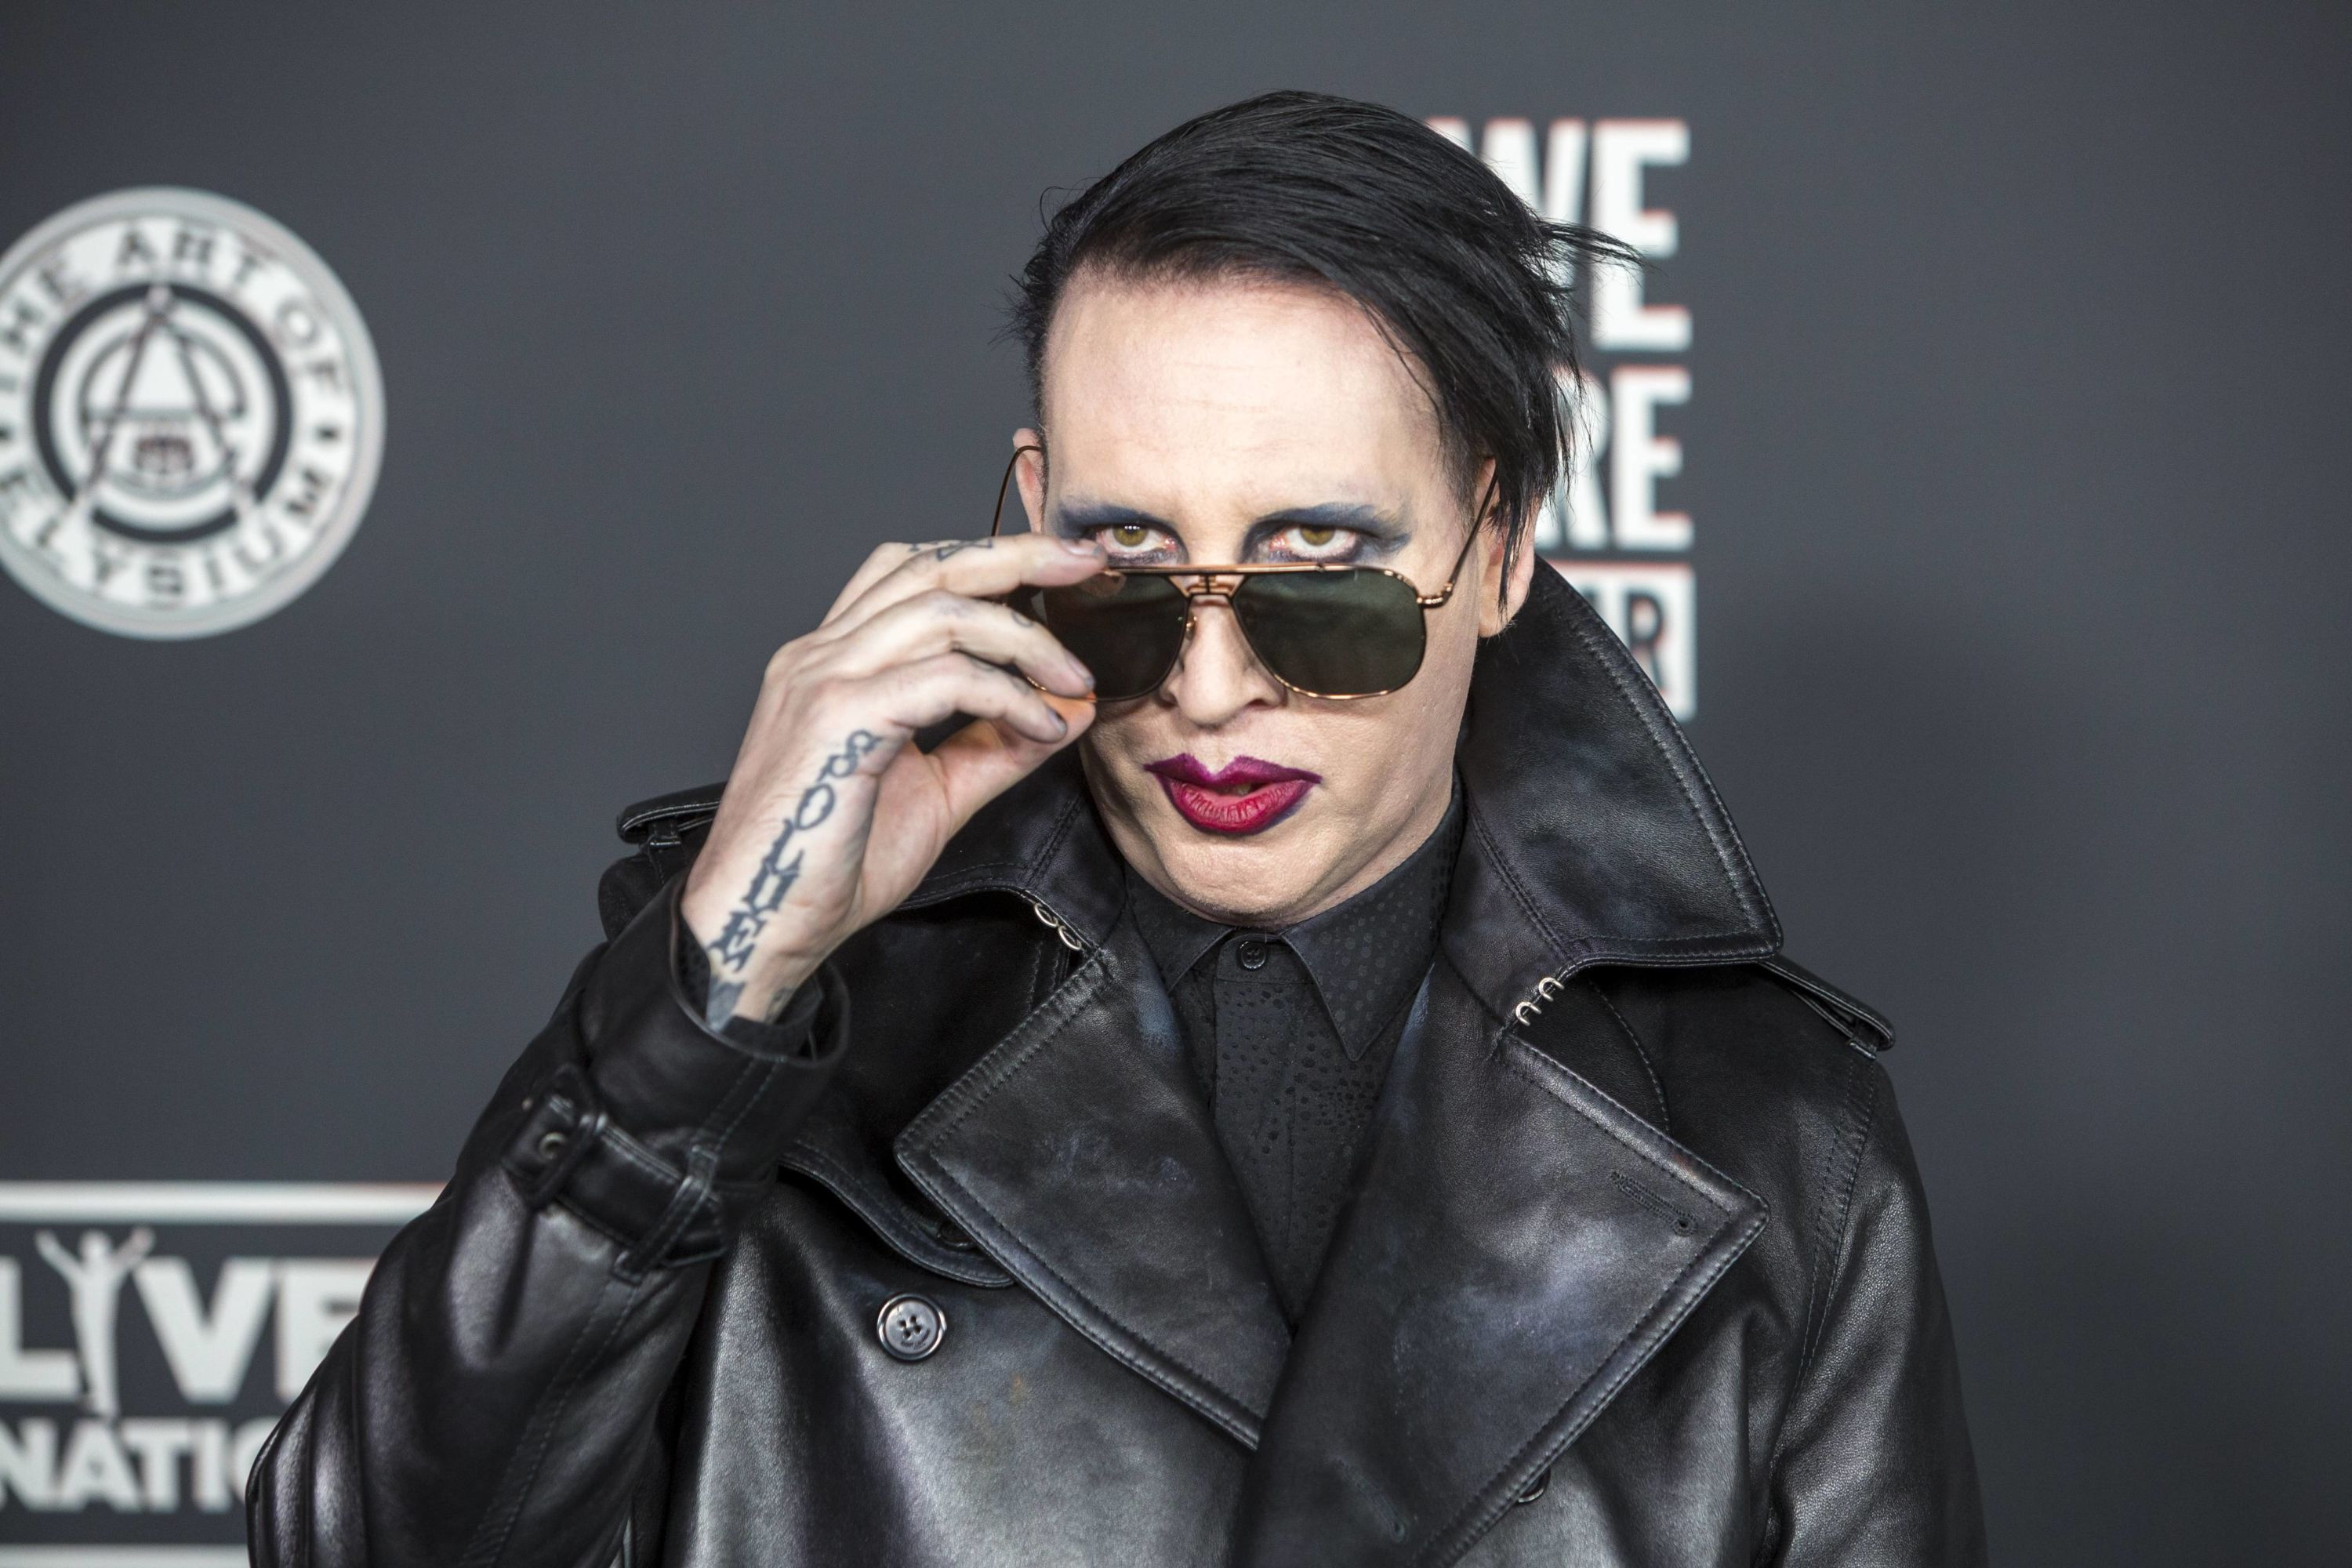 Une actrice de « Game of Thrones » fait de terribles révélations sur le « monstre » Marilyn Manson - Paris Match Belgique